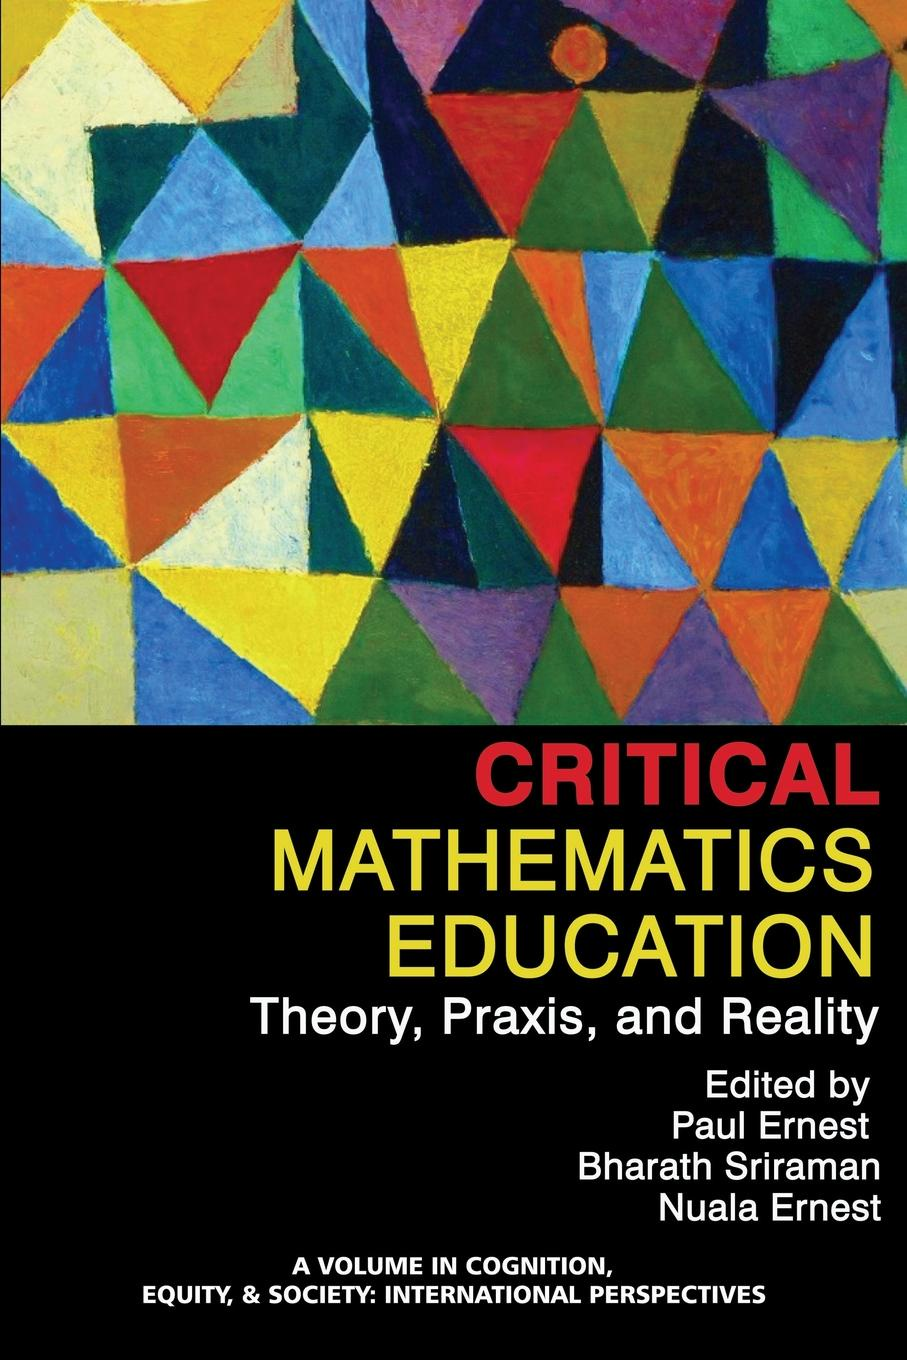 Critical Mathematics Education. Theory, Praxis, and Reality critical mathematics education theory praxis and reality